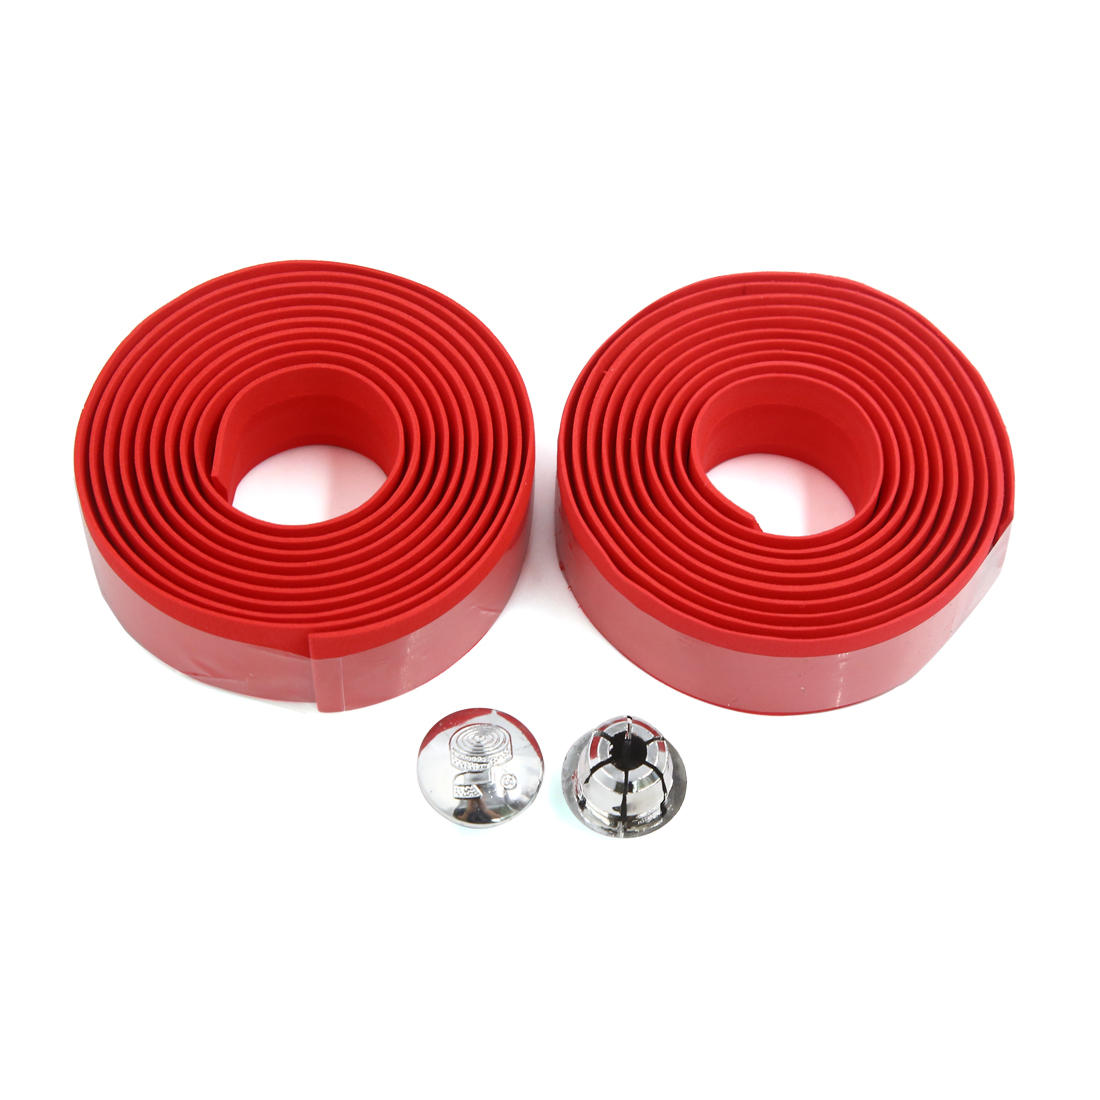 2pcs Lightweight Red Antislip Bike Bicycle Handlebars Tape Wrap w 2 Bar Plugs